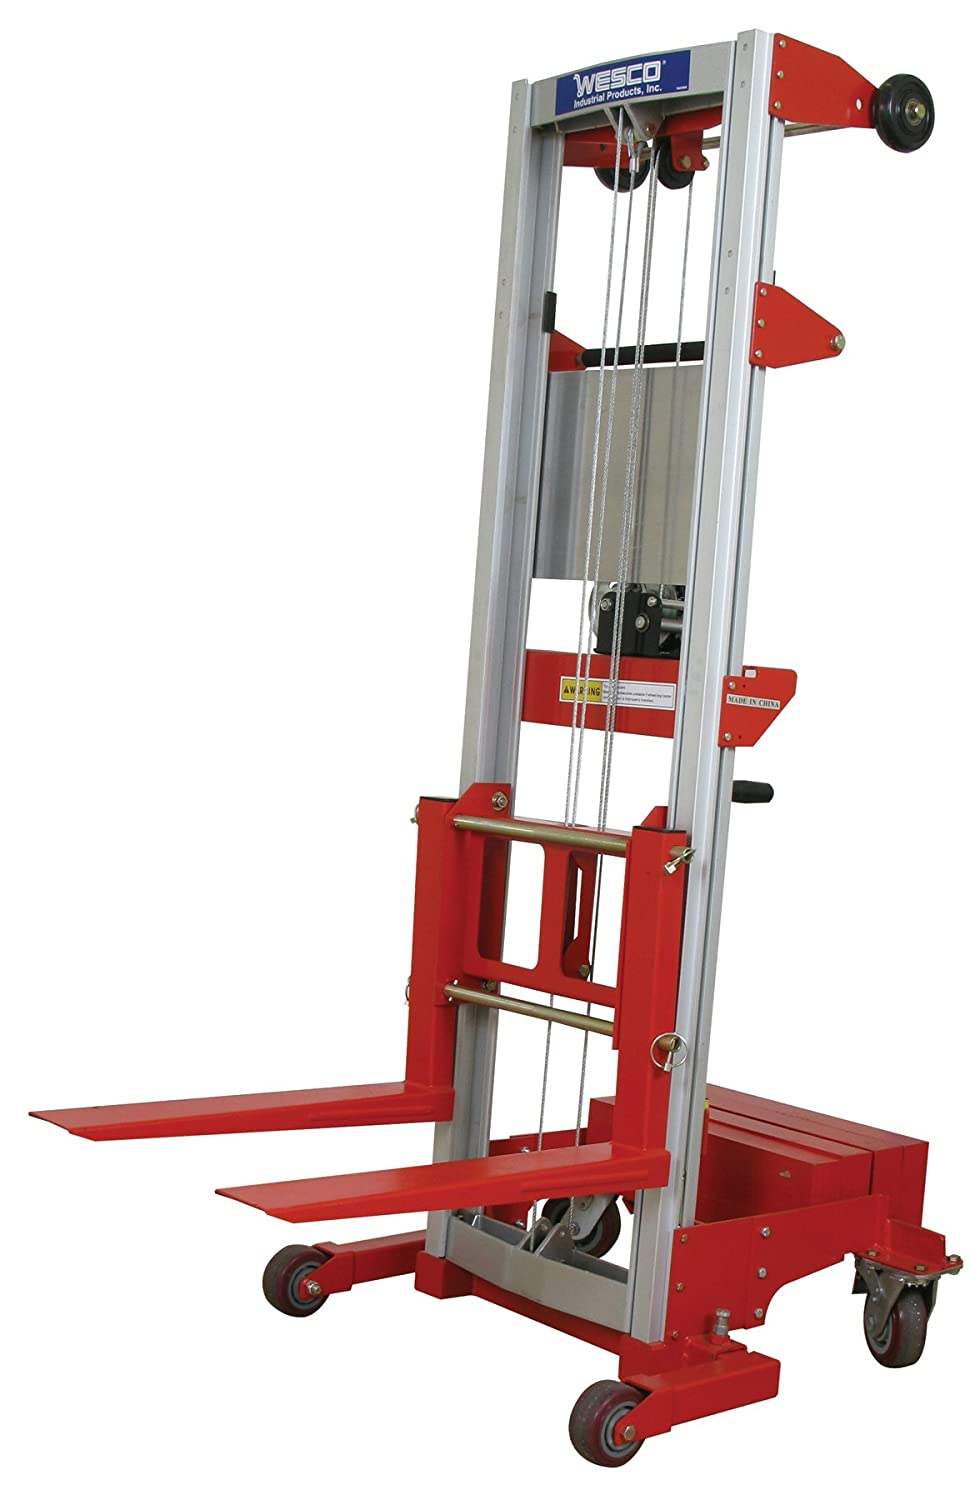 400-lb 24 x 35 x 68 Wesco Industrial Products 273510 Aluminum//Steel Hand Winch Lifter with Fixed Base Capacity